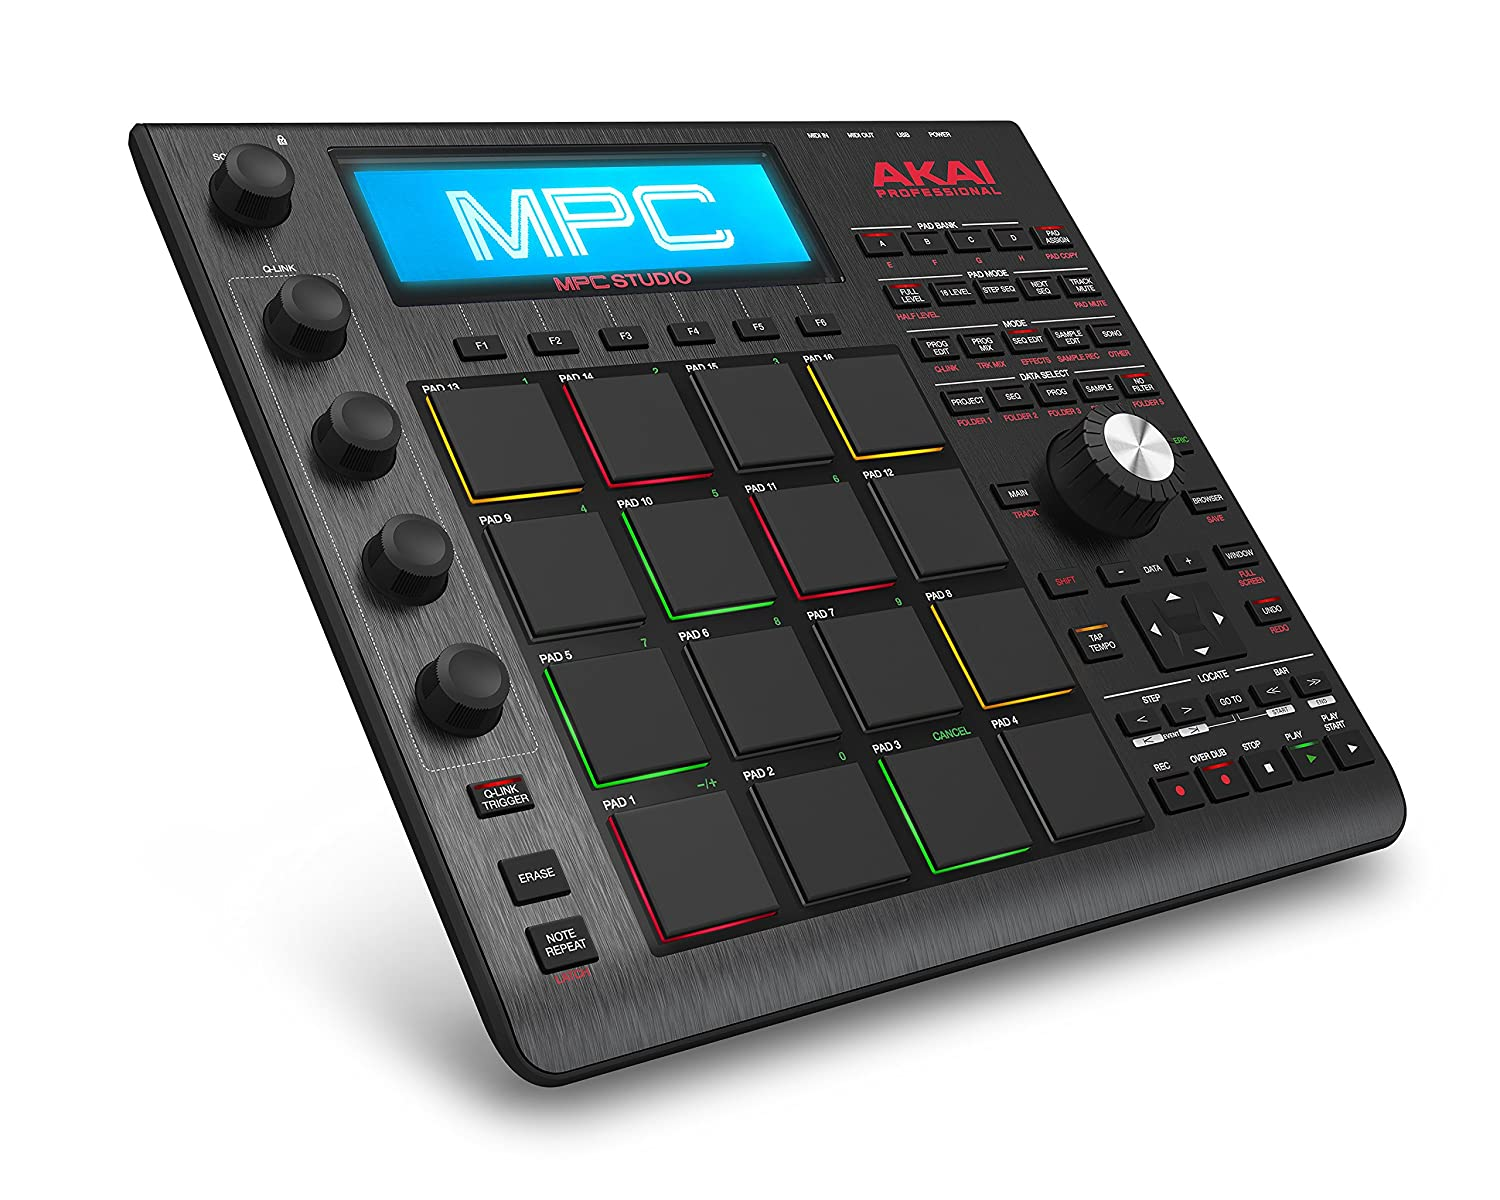 Akai Professional MPC Studio Black | Ultra-Portable MPC With MPC Software  (Download), USB Power, LCD Screen, Touch Sensitive Encoders, Brushed